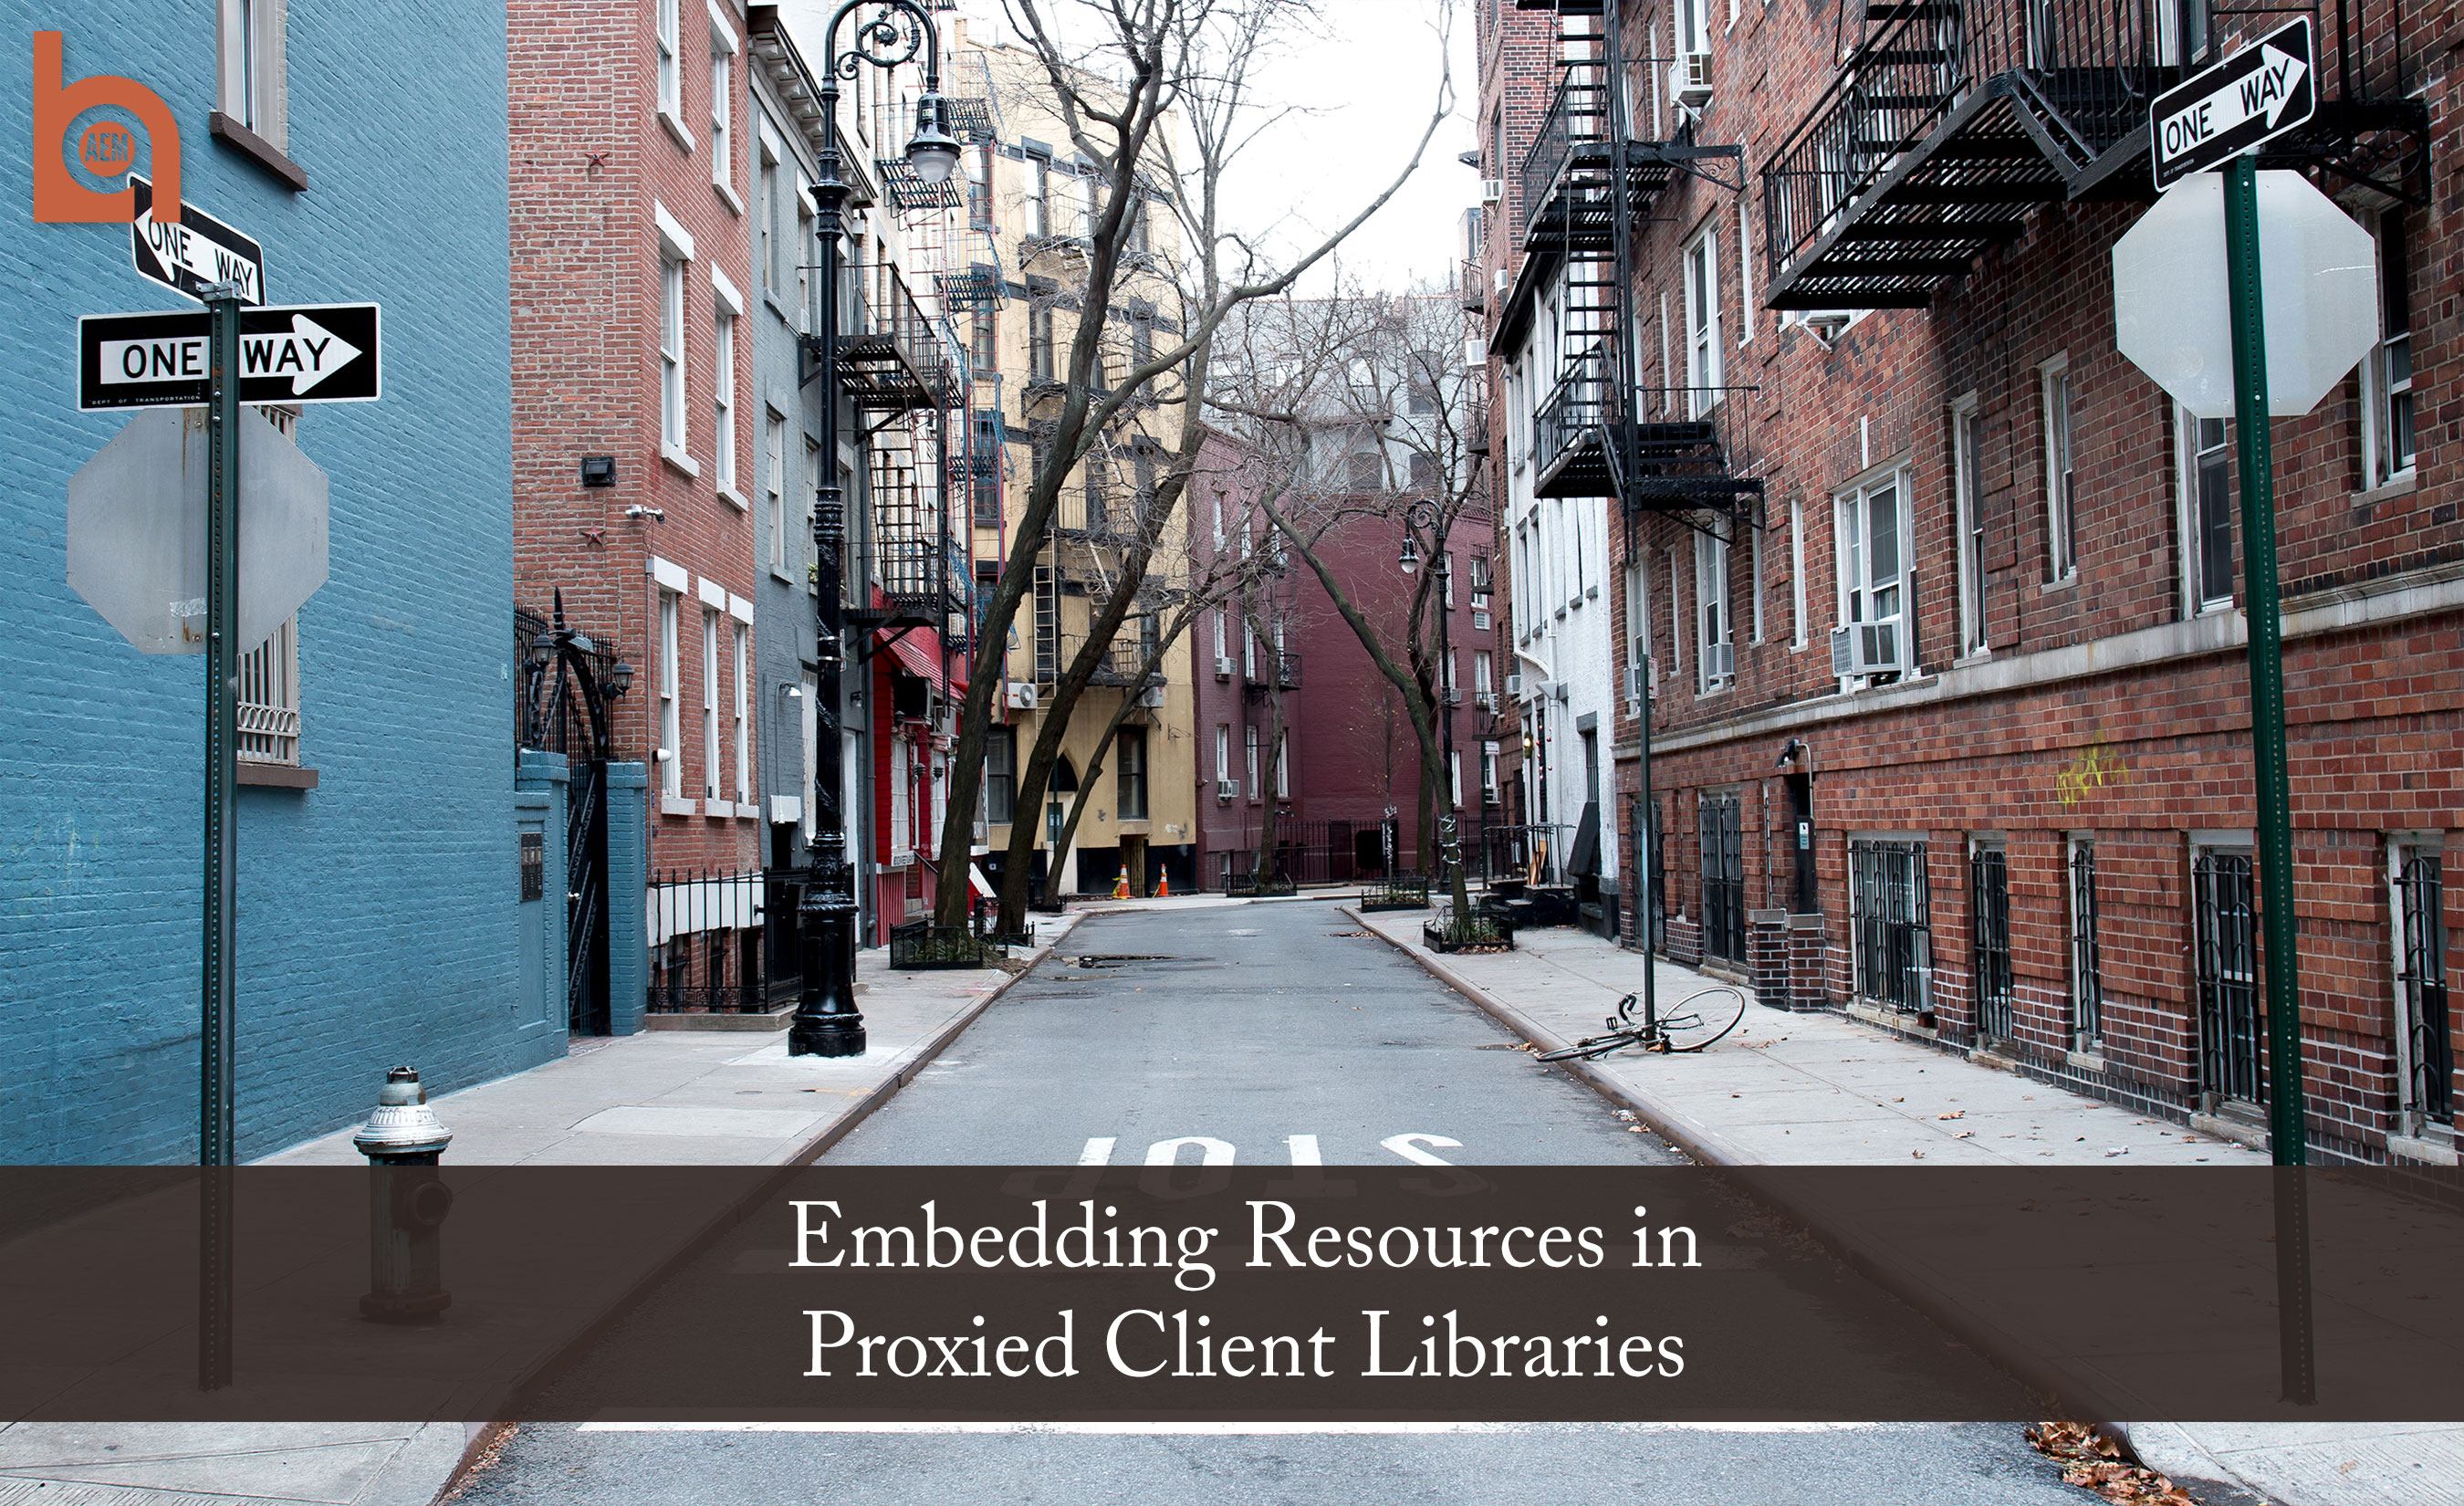 Embedding Resources in Proxied Client Libraries